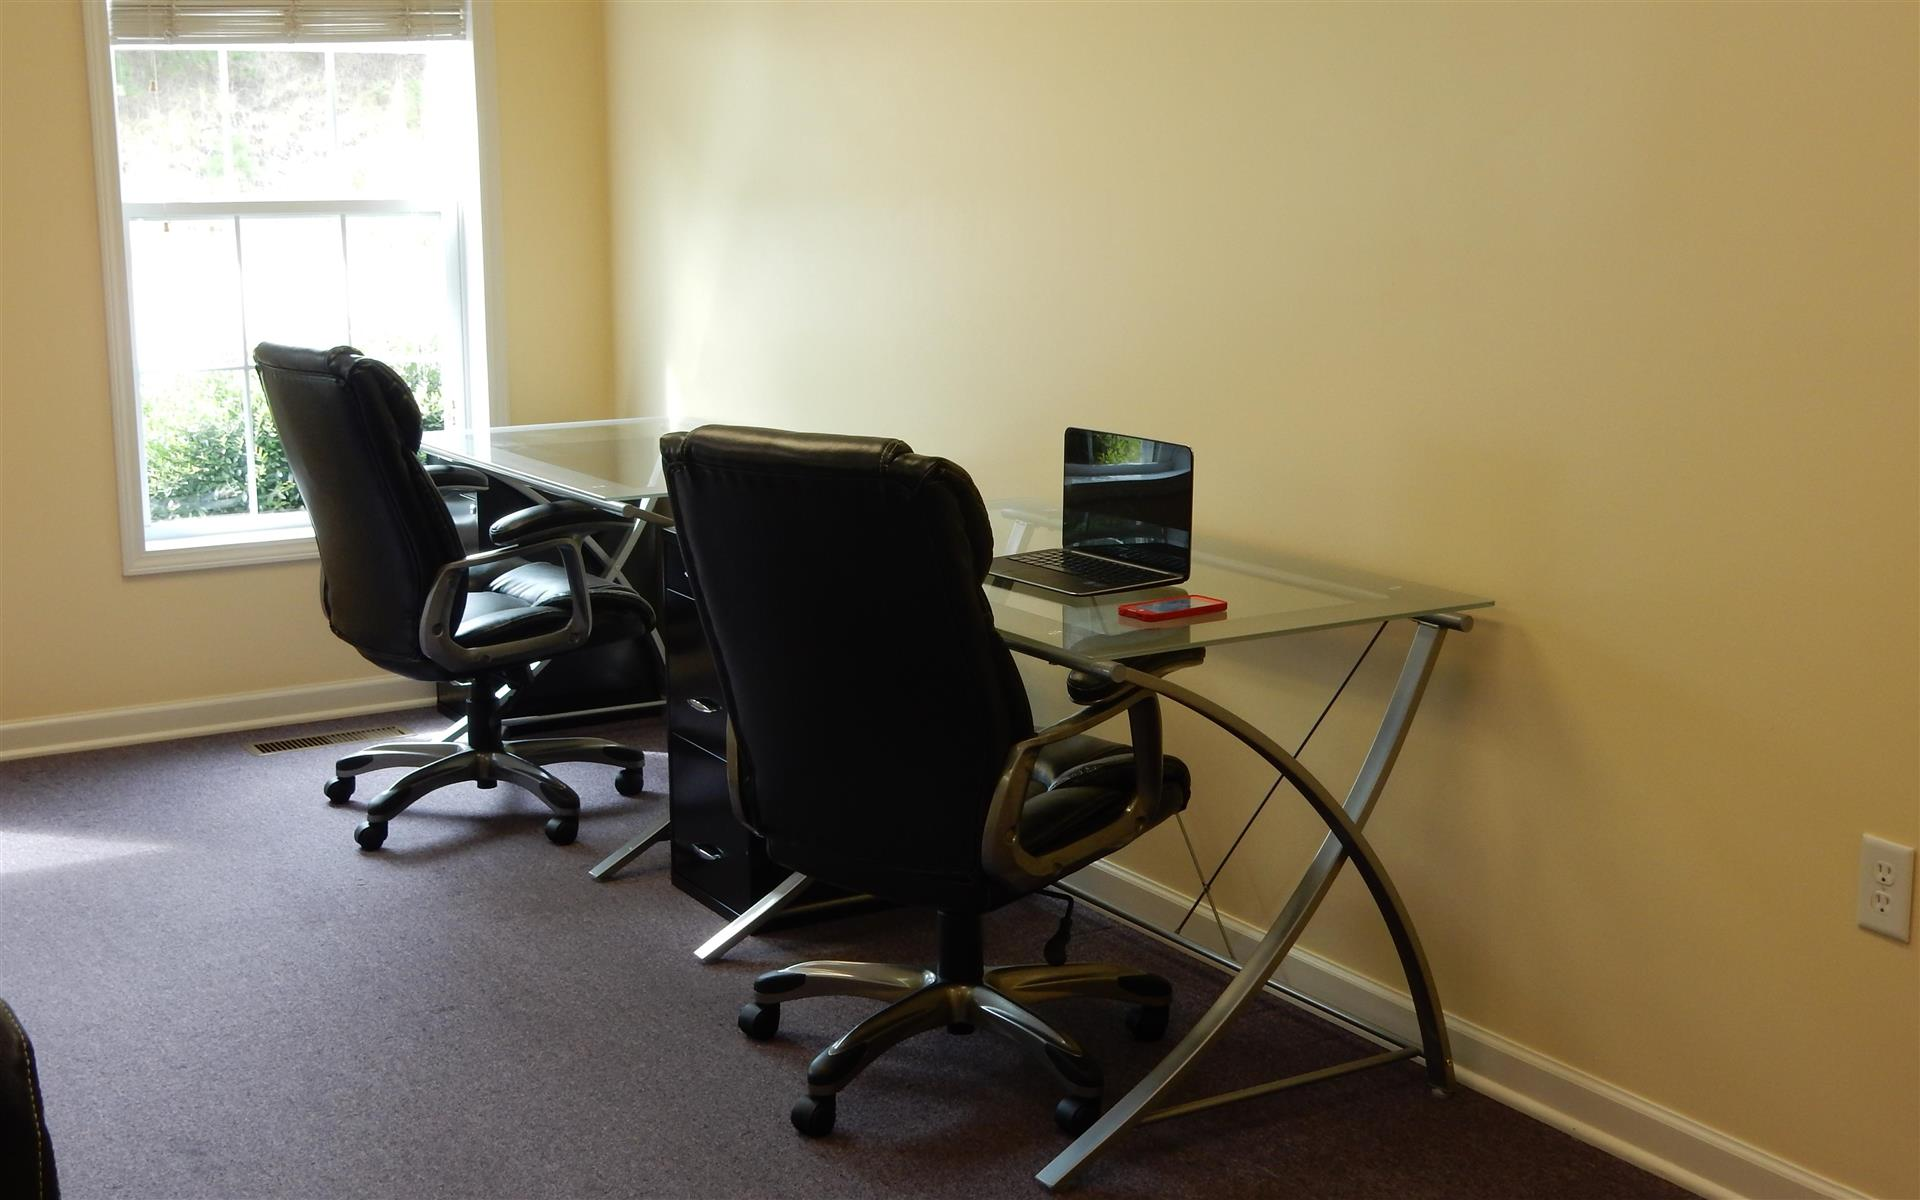 Asheville Coworking Offices - Coworking Personal Desk Space